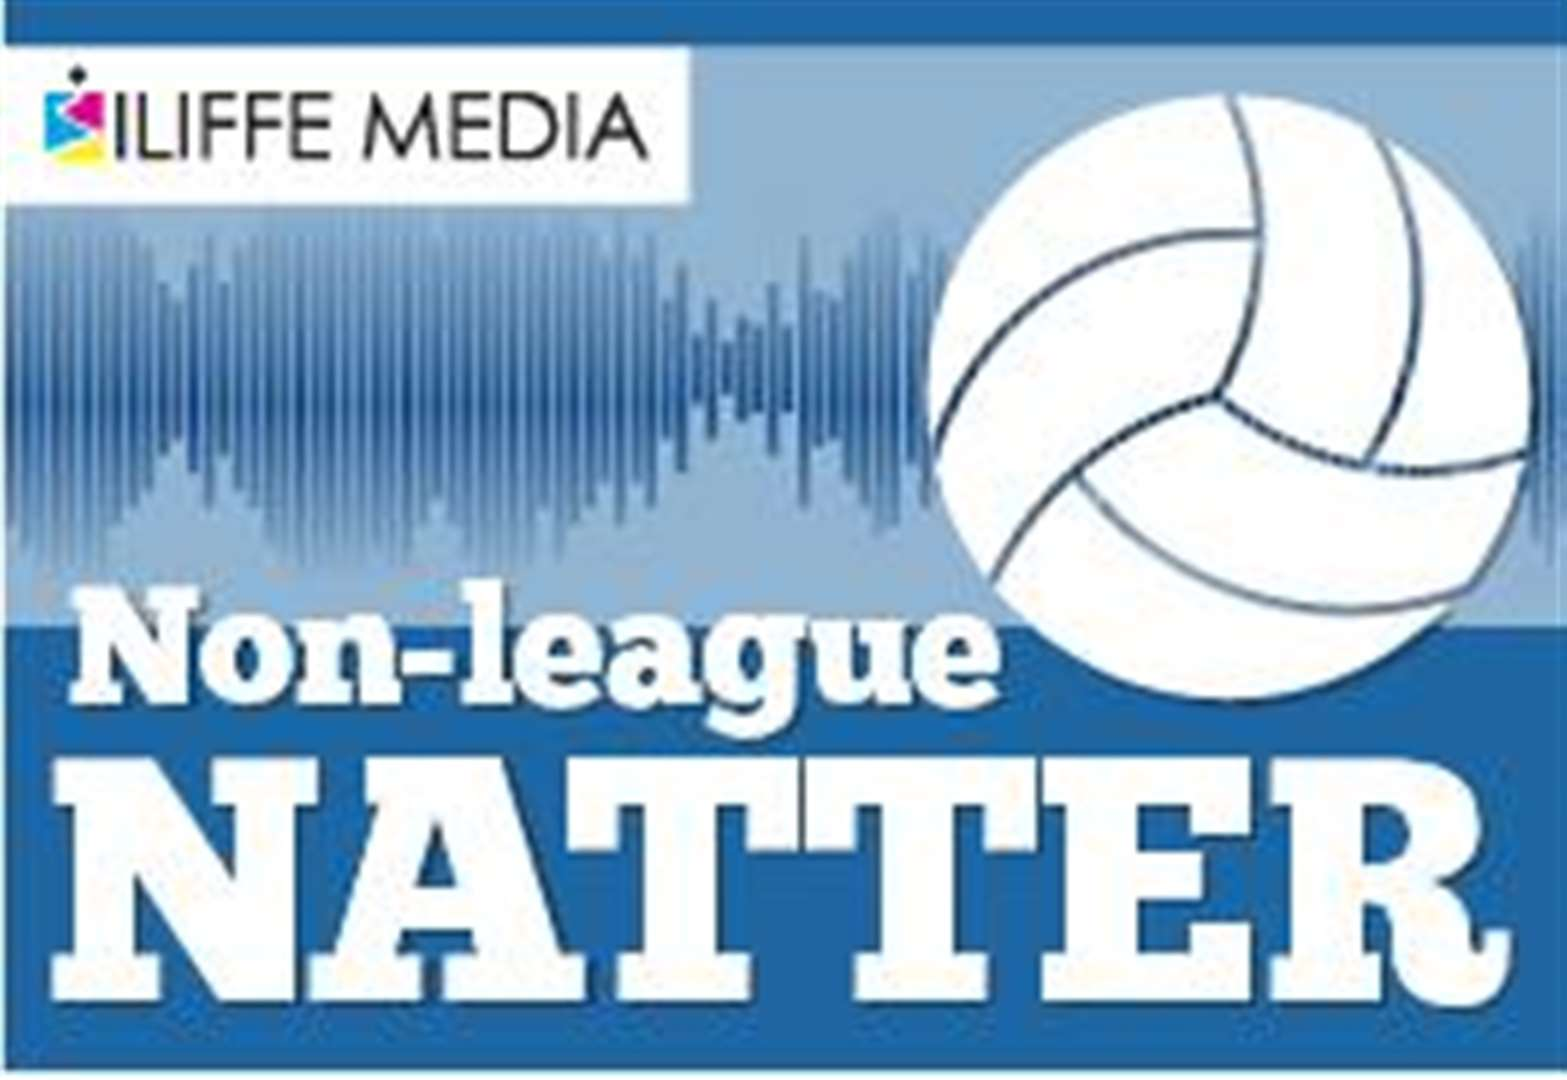 Non-League Natter Podcast: Ep7